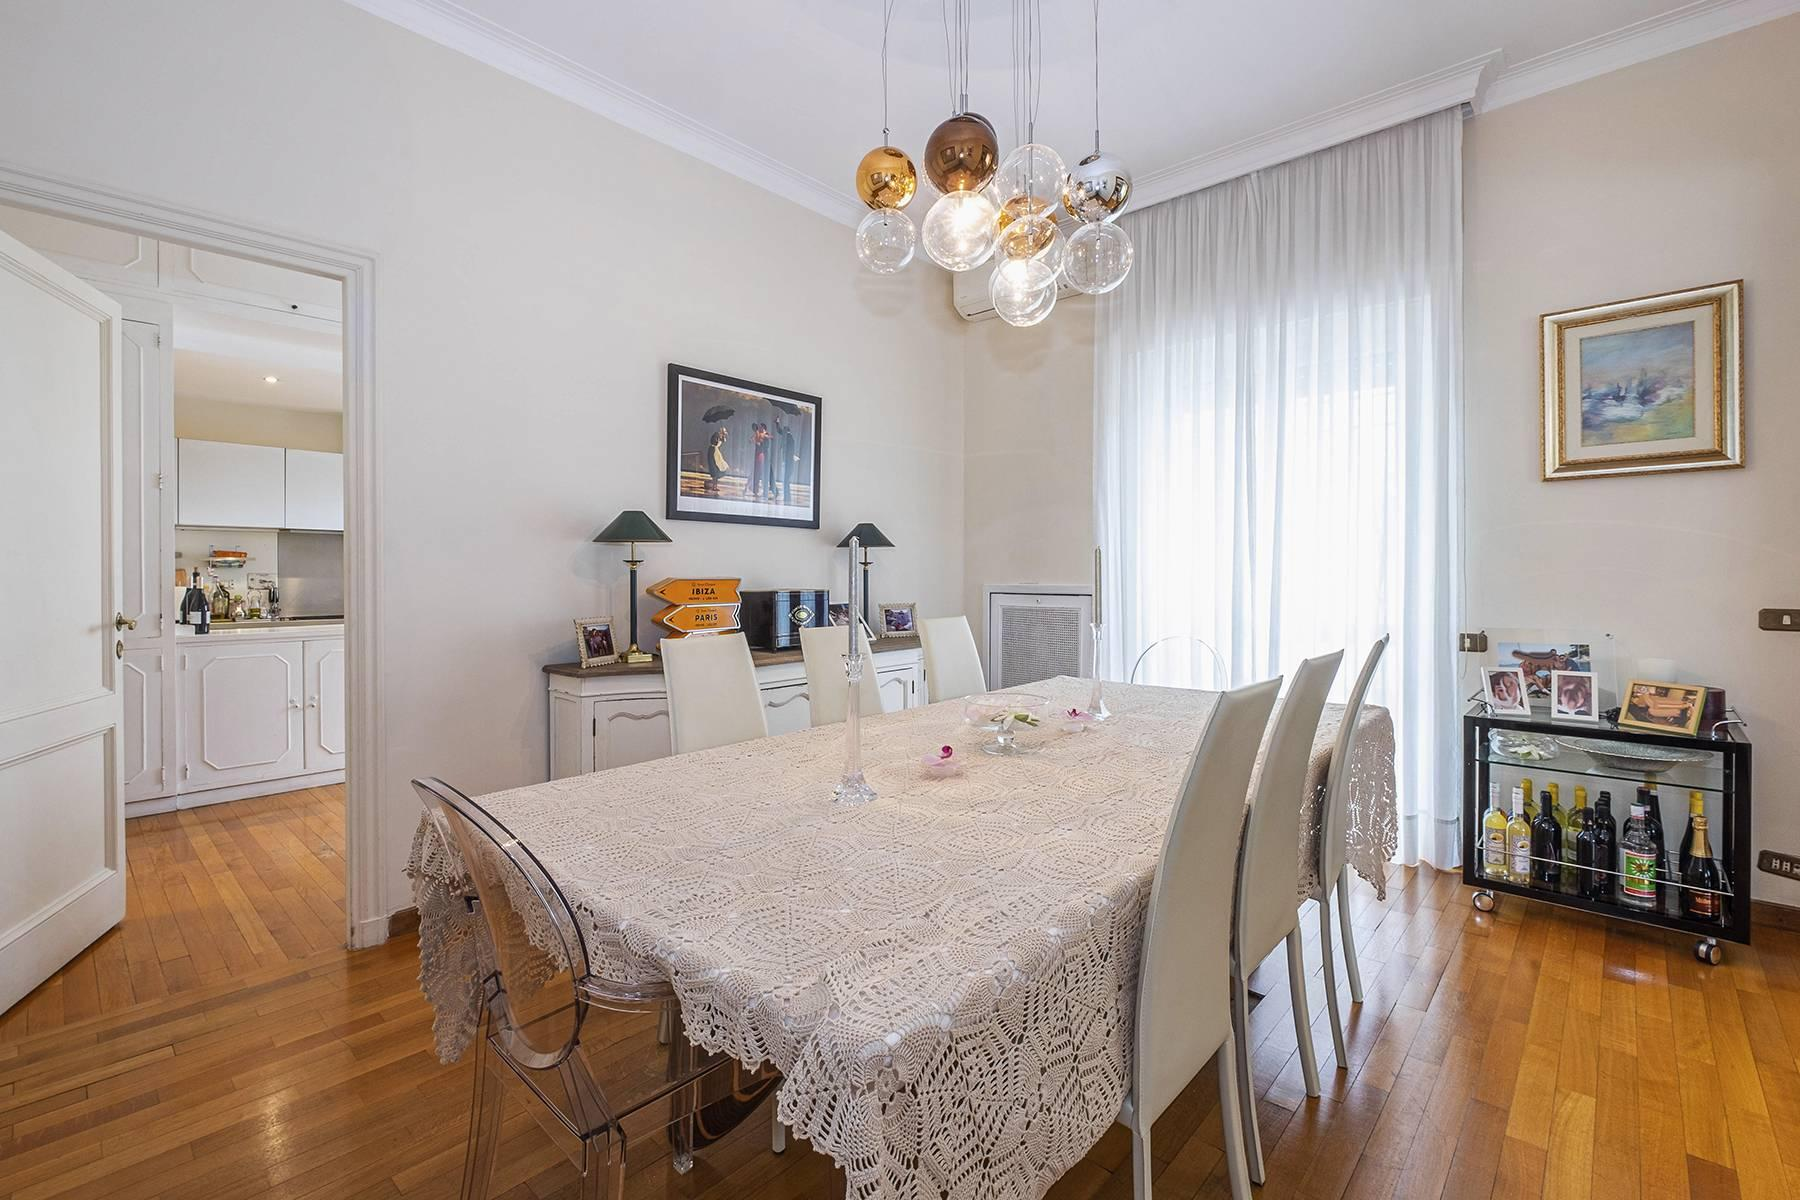 Modern penthouse with stunning 70 sqm terrace a stone's throw from Villa Borghese - 8